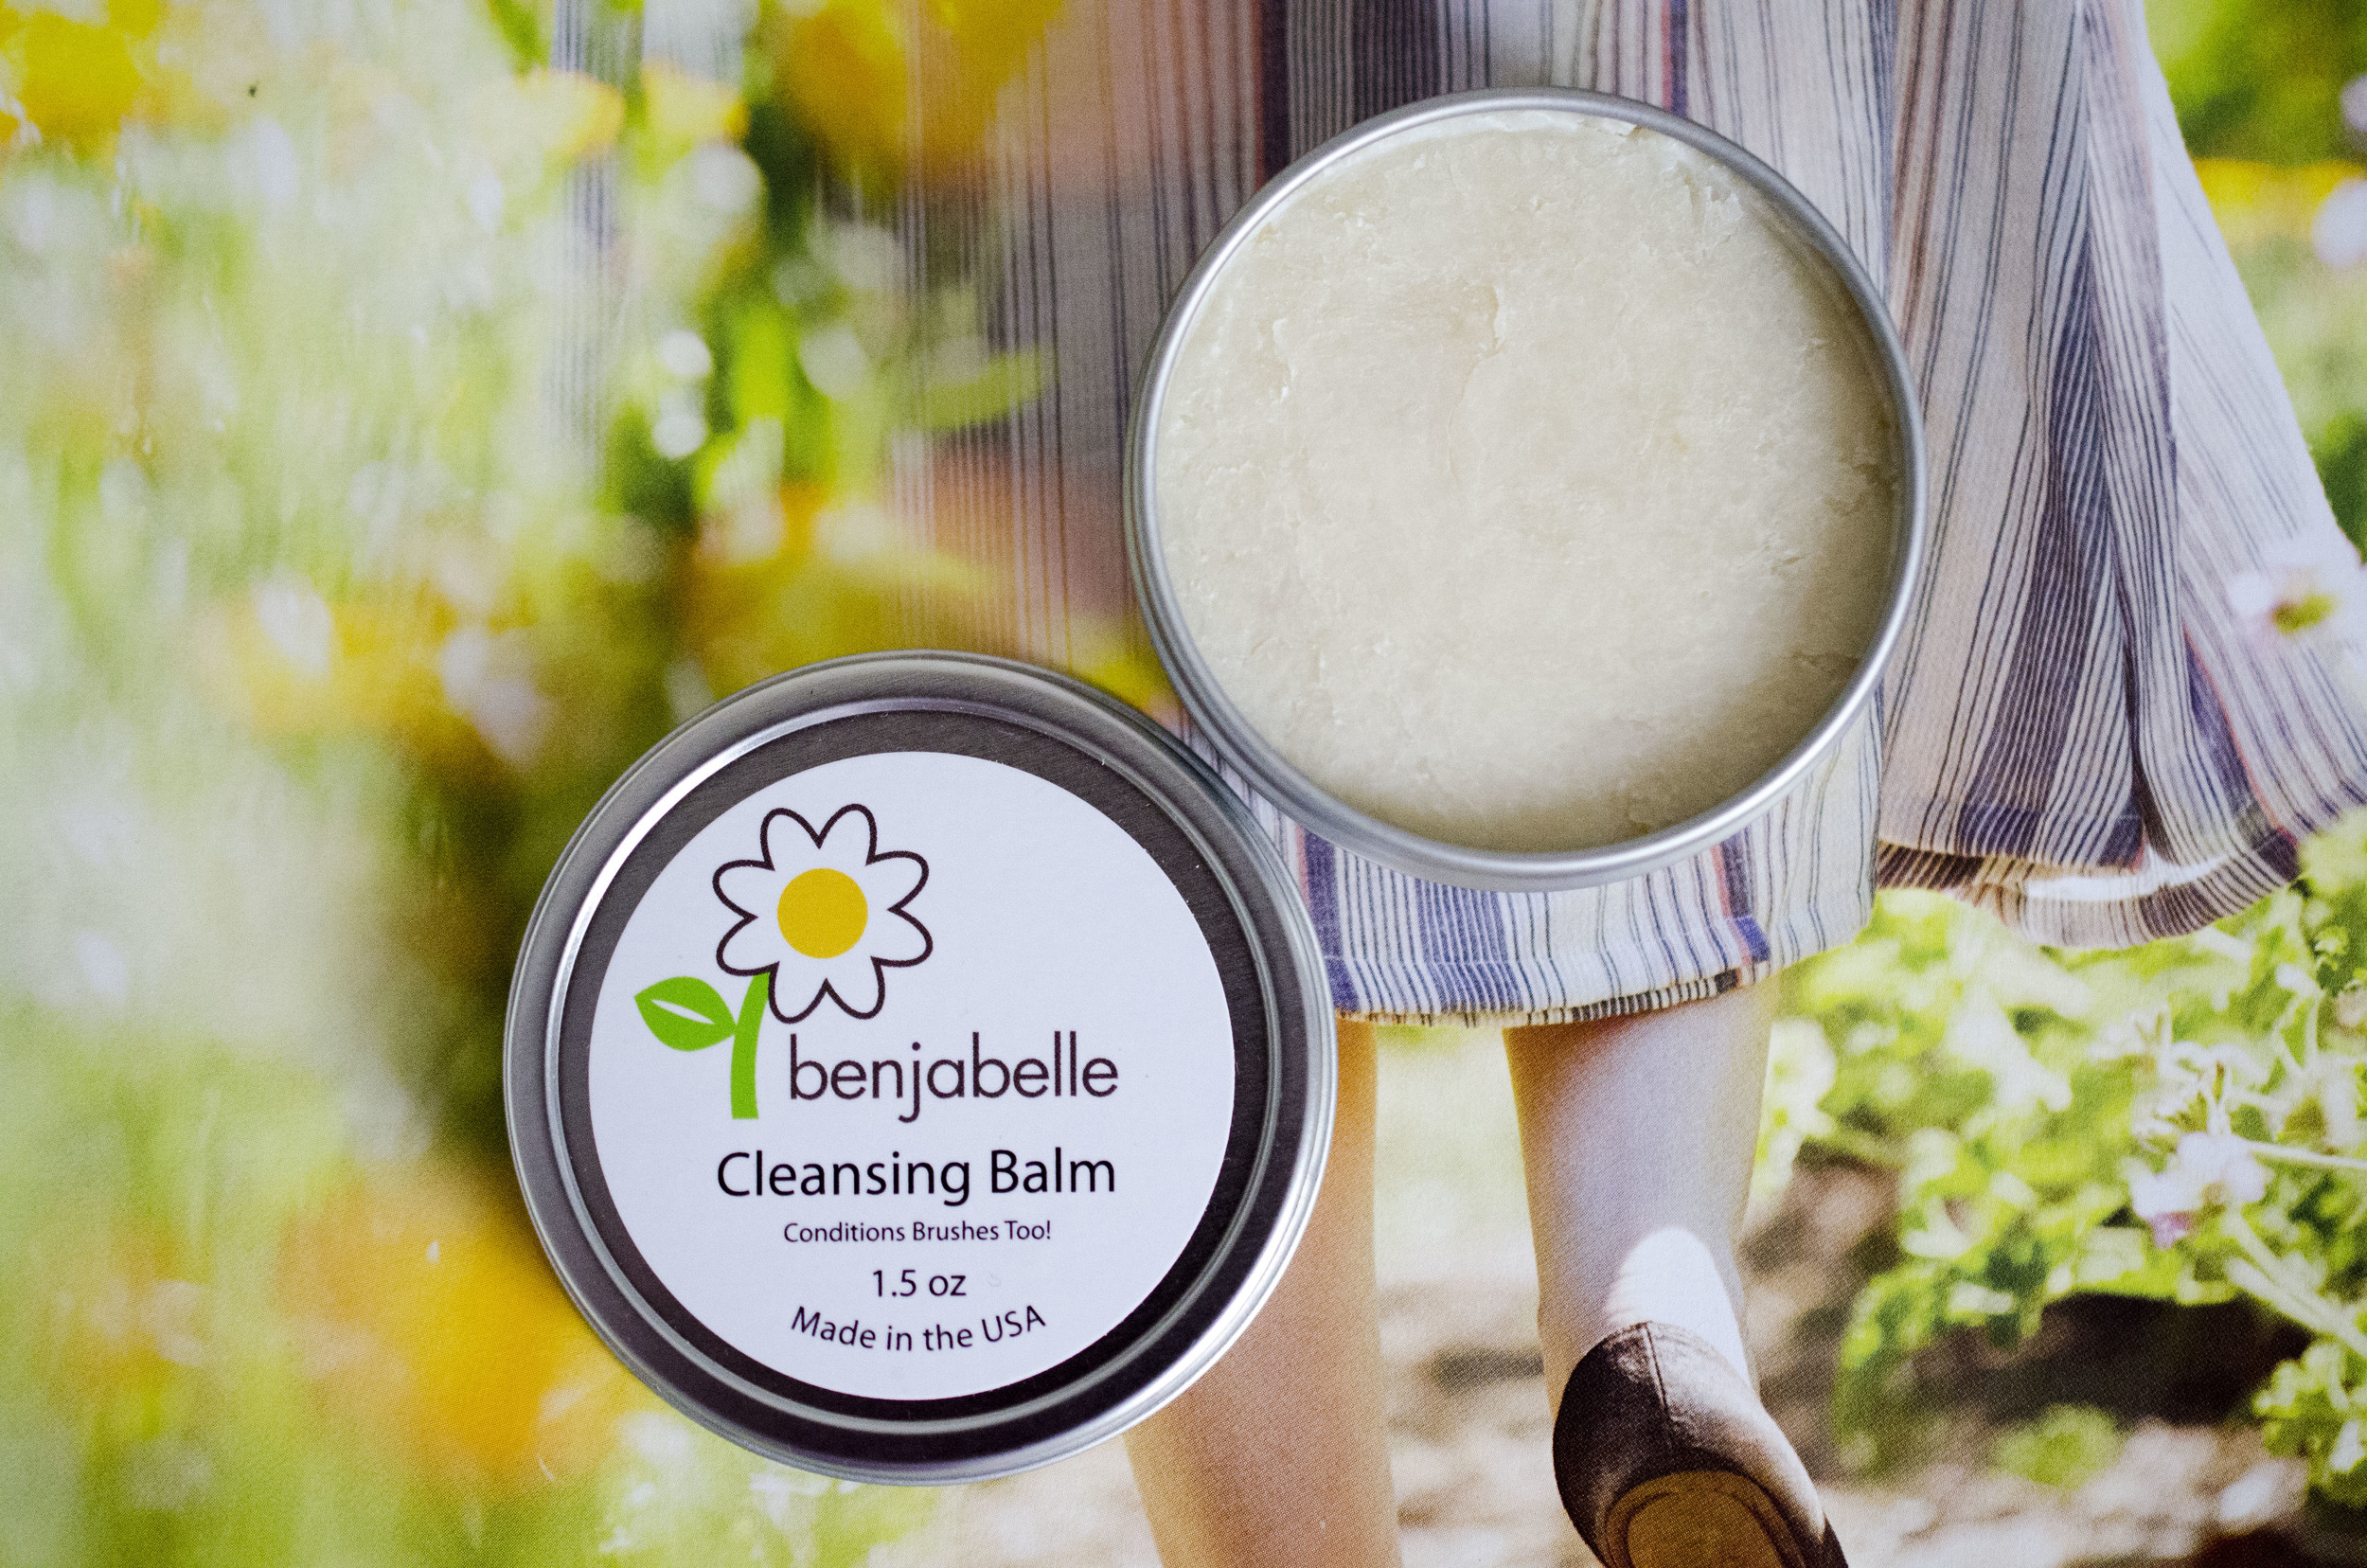 Benjabelle Cleansing Balm - kimmyp